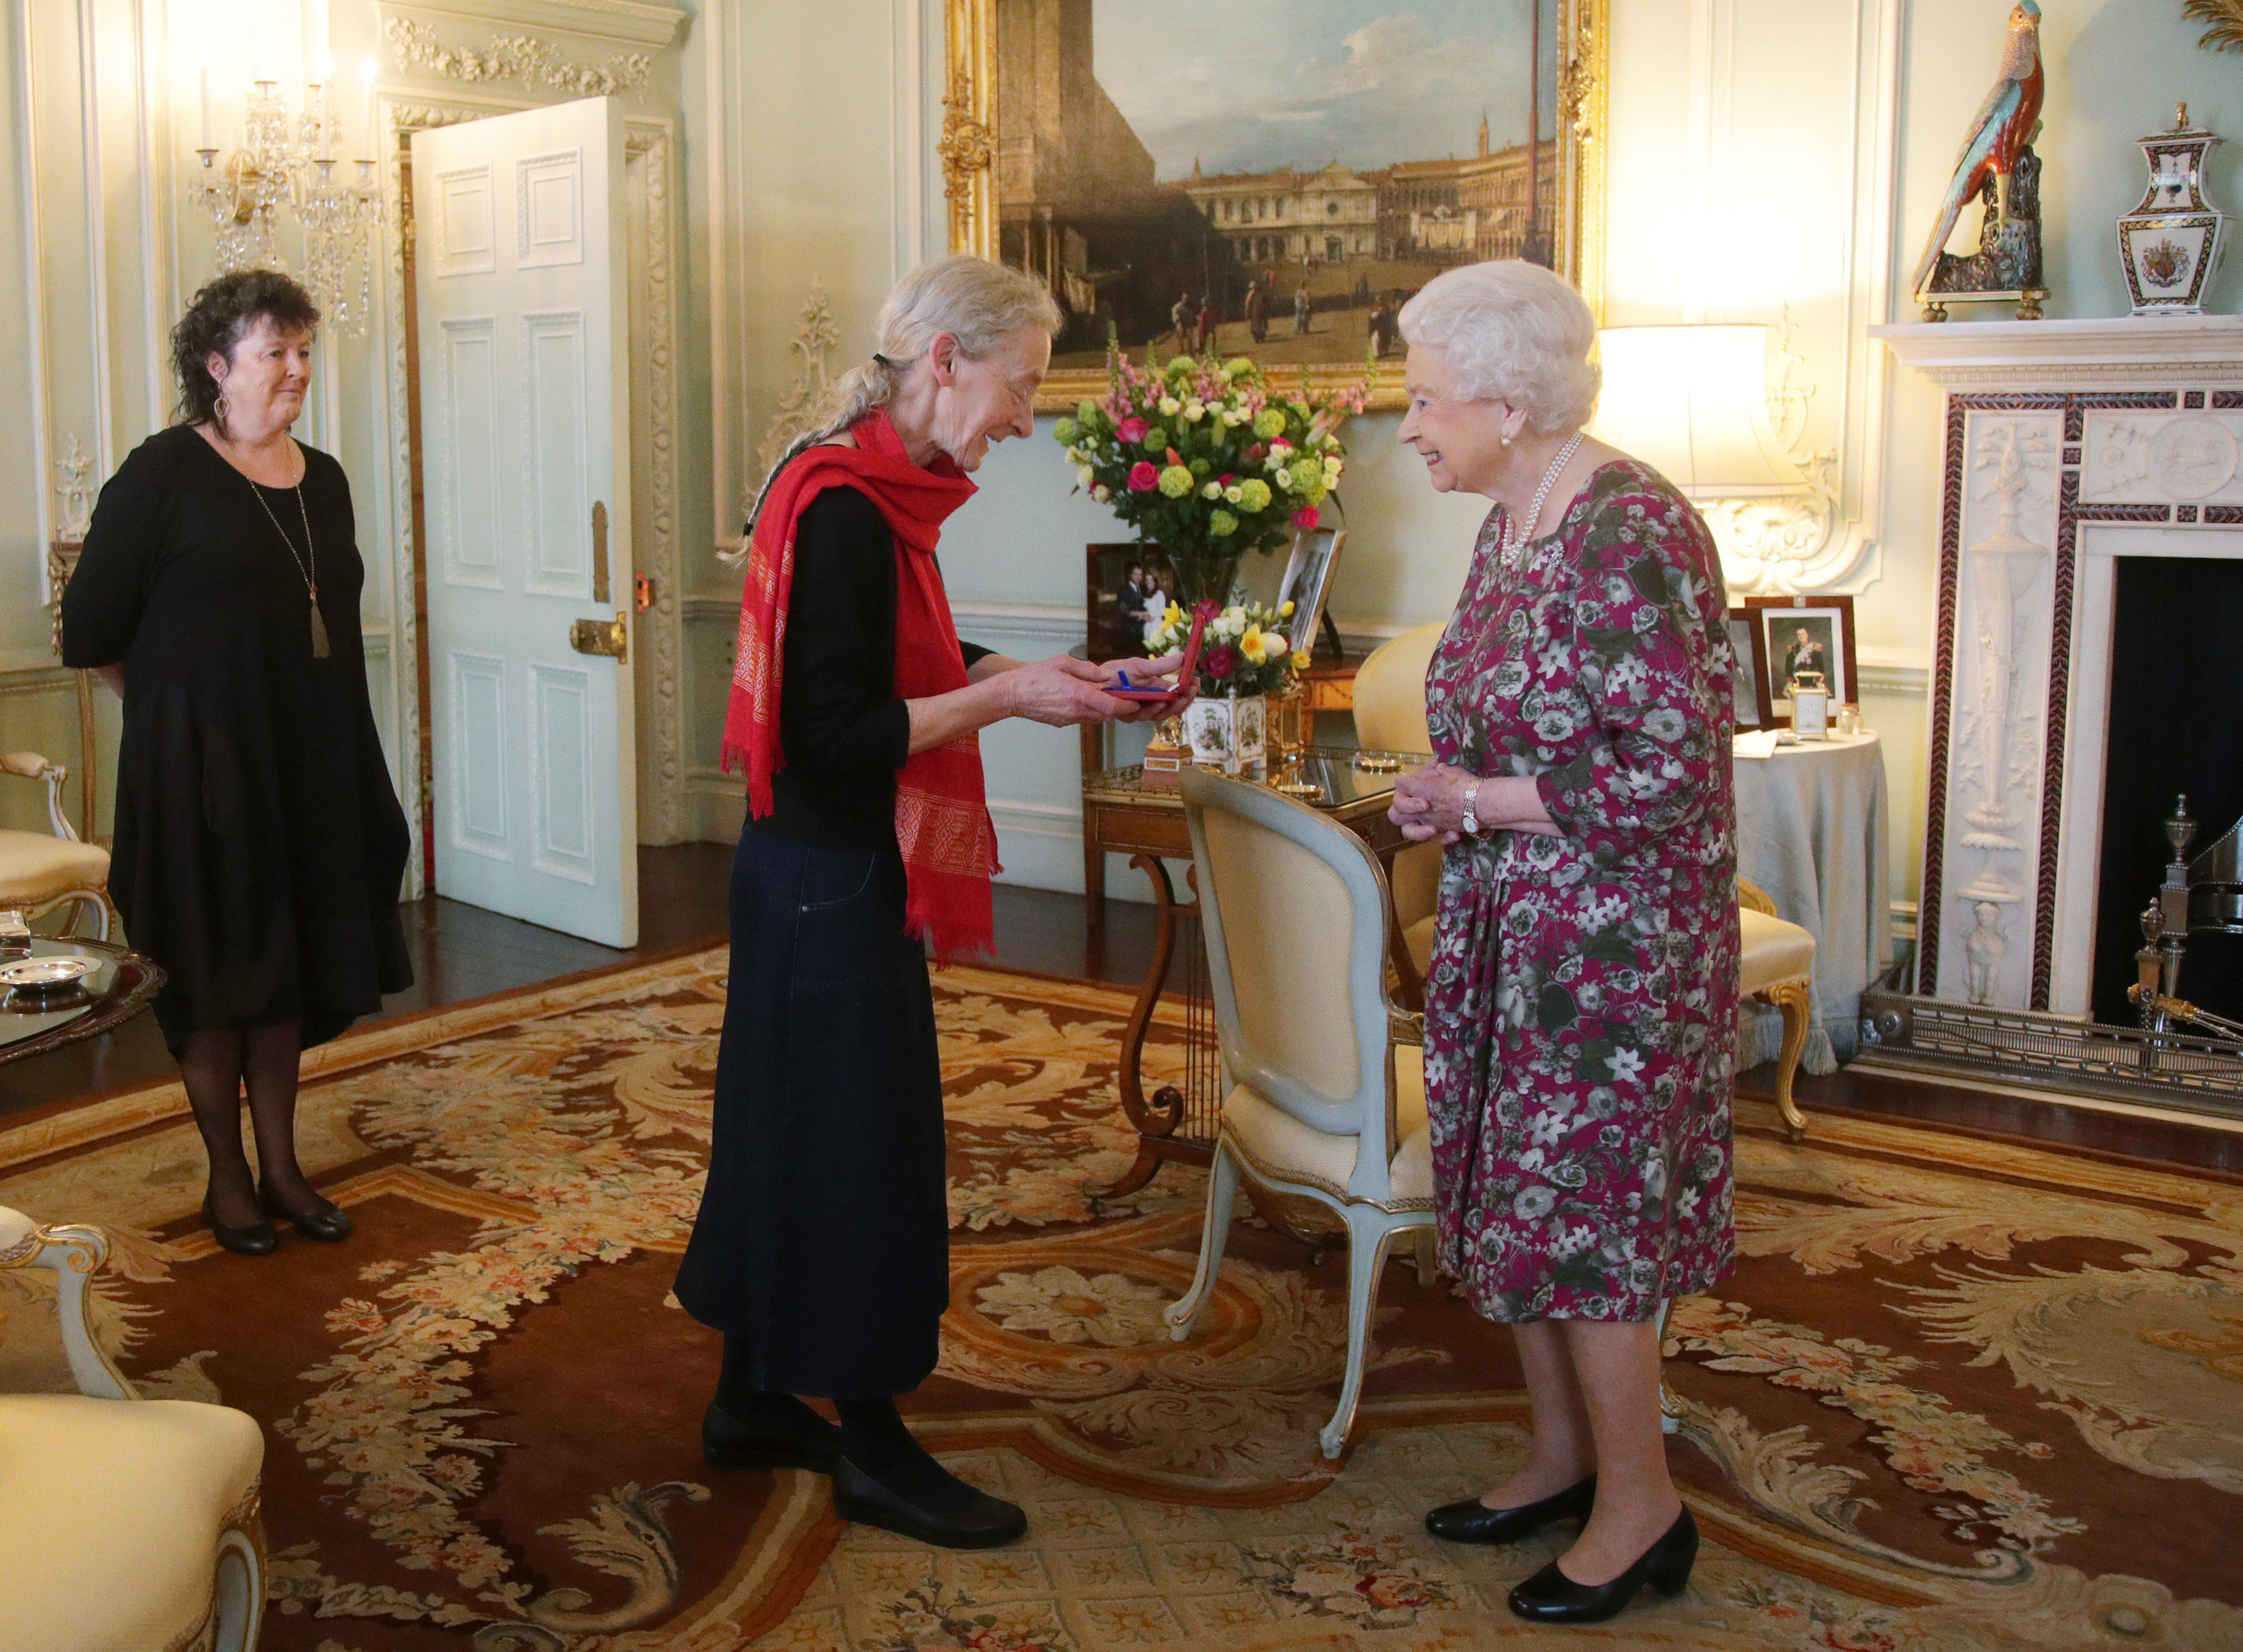 The Queens Gold Medal For Poetry 2016 The Royal Family